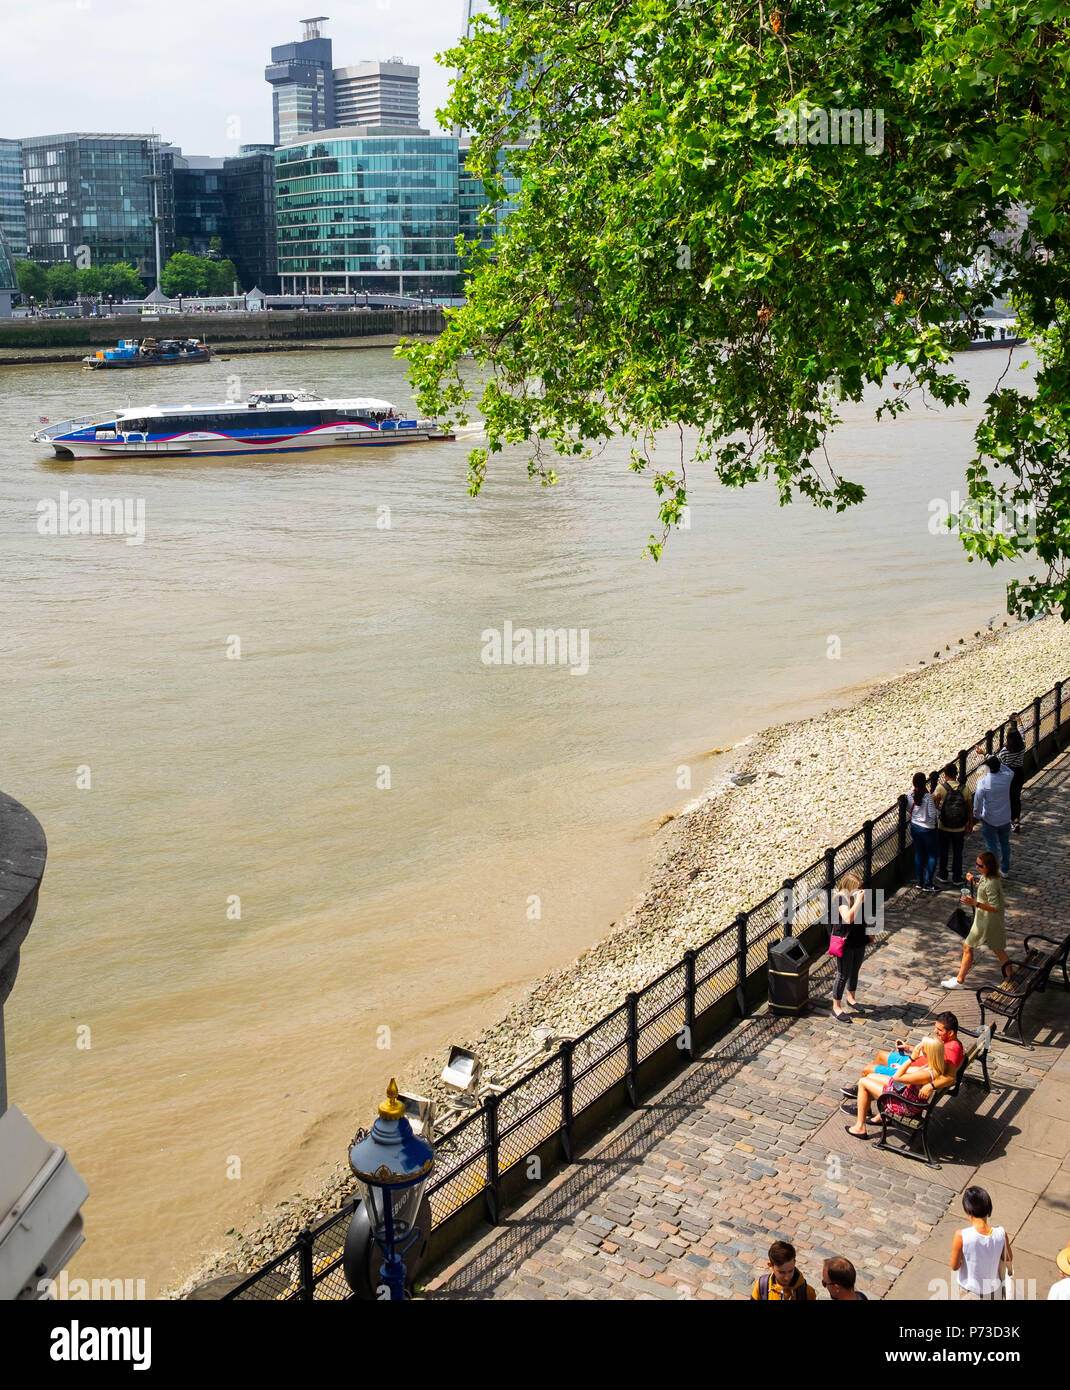 London, England. 4th July 2018. Tourists enjoy the river near London's Tower Bridge on another very hot day. The present heatwave is set to continue. ©Tim Ring/Alamy Live News Stock Photo